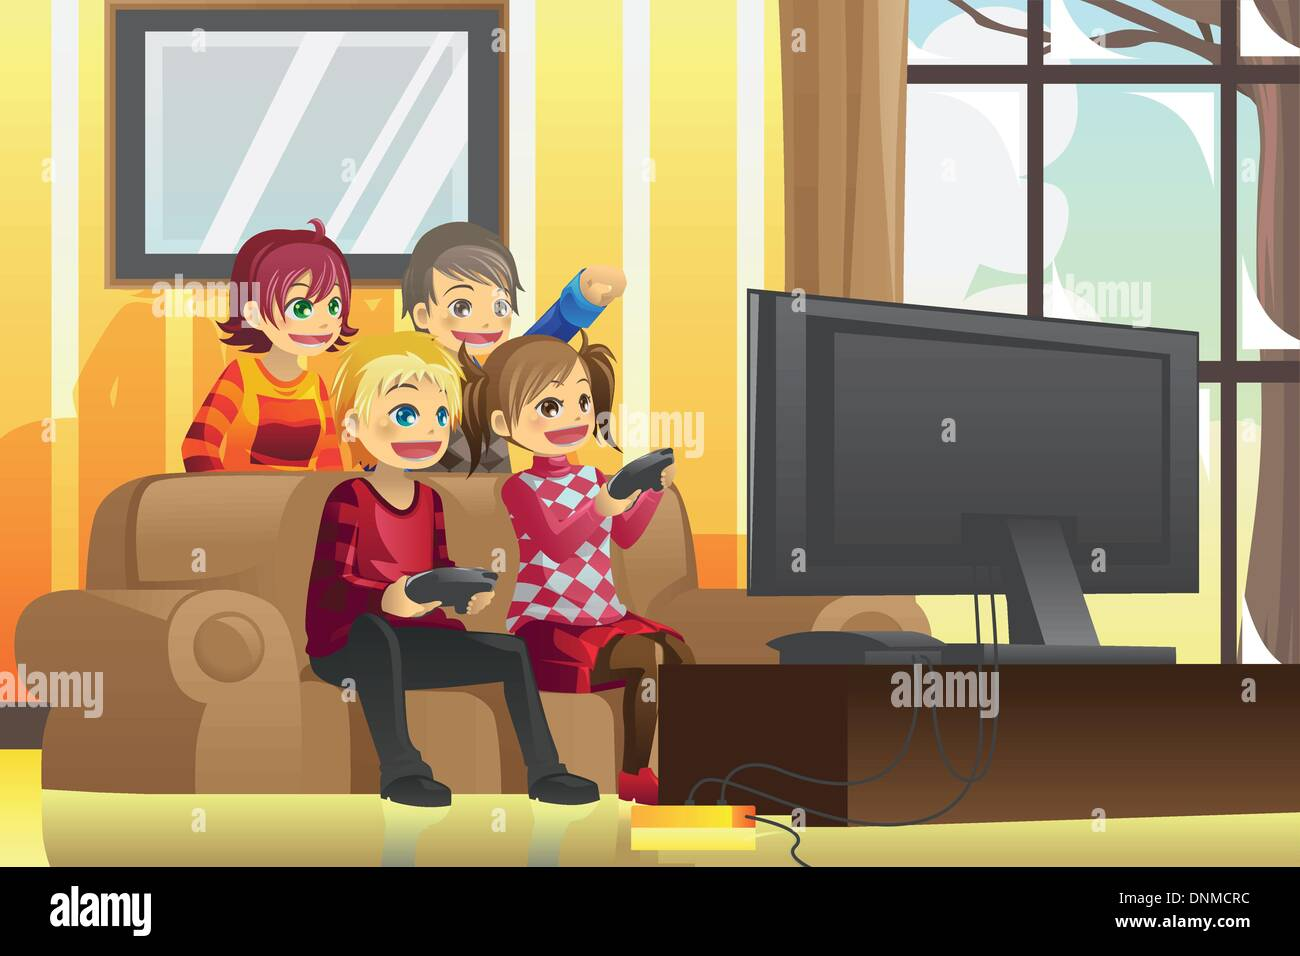 A vector illustration of kids playing video games at home Stock     A vector illustration of kids playing video games at home